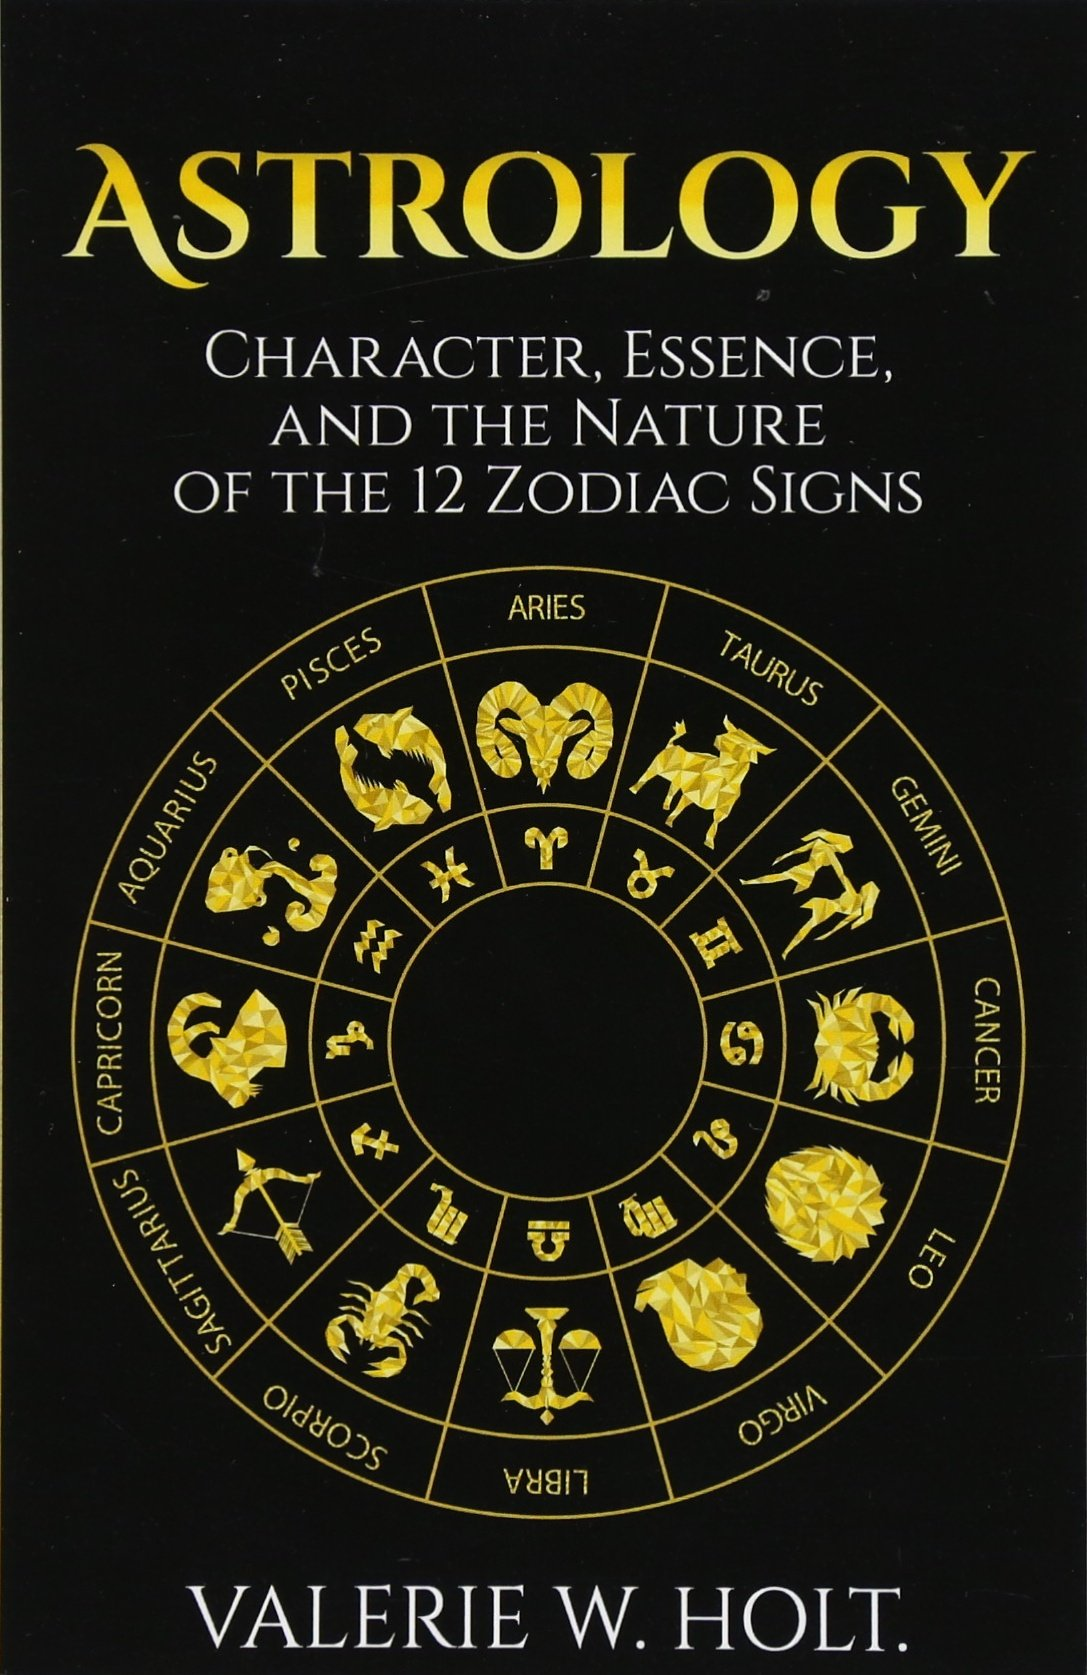 Astrology: Character, Essence, and the Nature of the 12 Zodiac Signs PDF